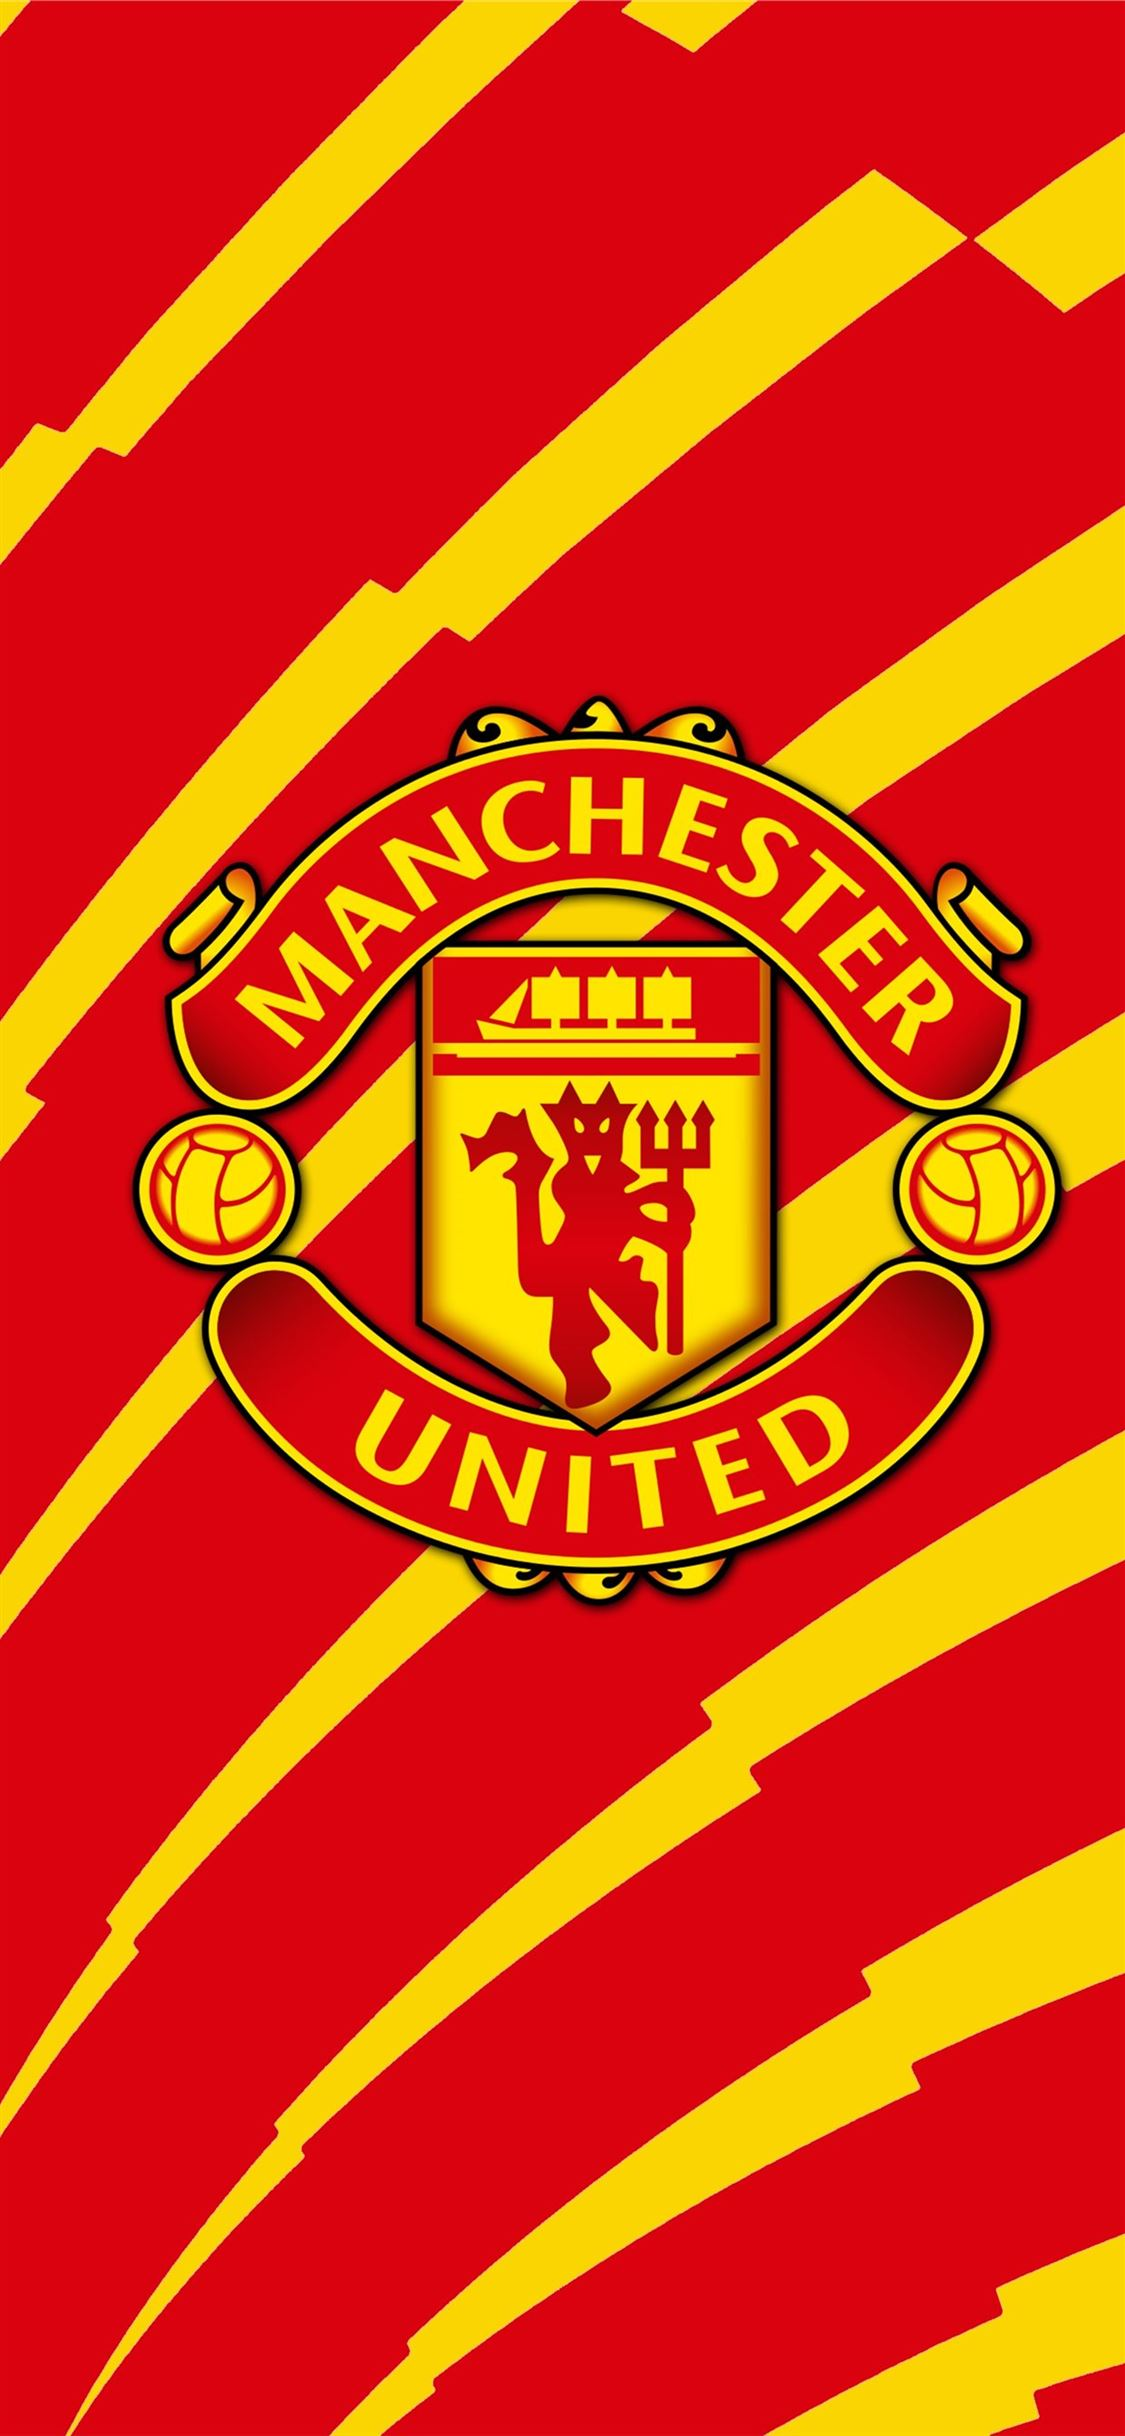 Manchester United Premier League 1617 Hd Desktop Iphone X Wallpapers Free Download